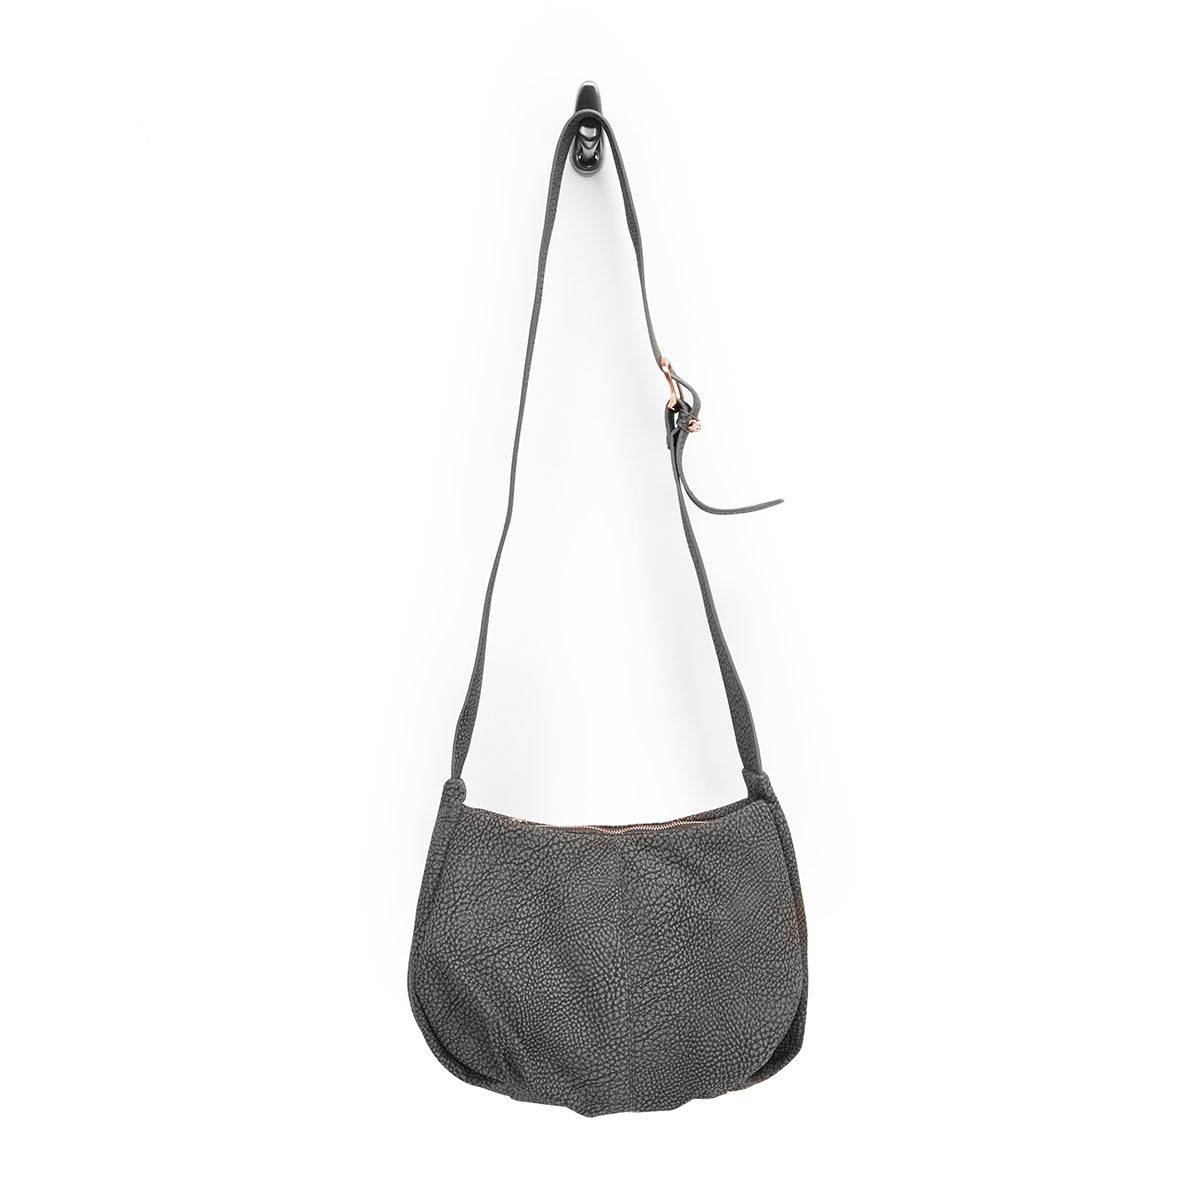 Lds grey 3 compartment cross body bag